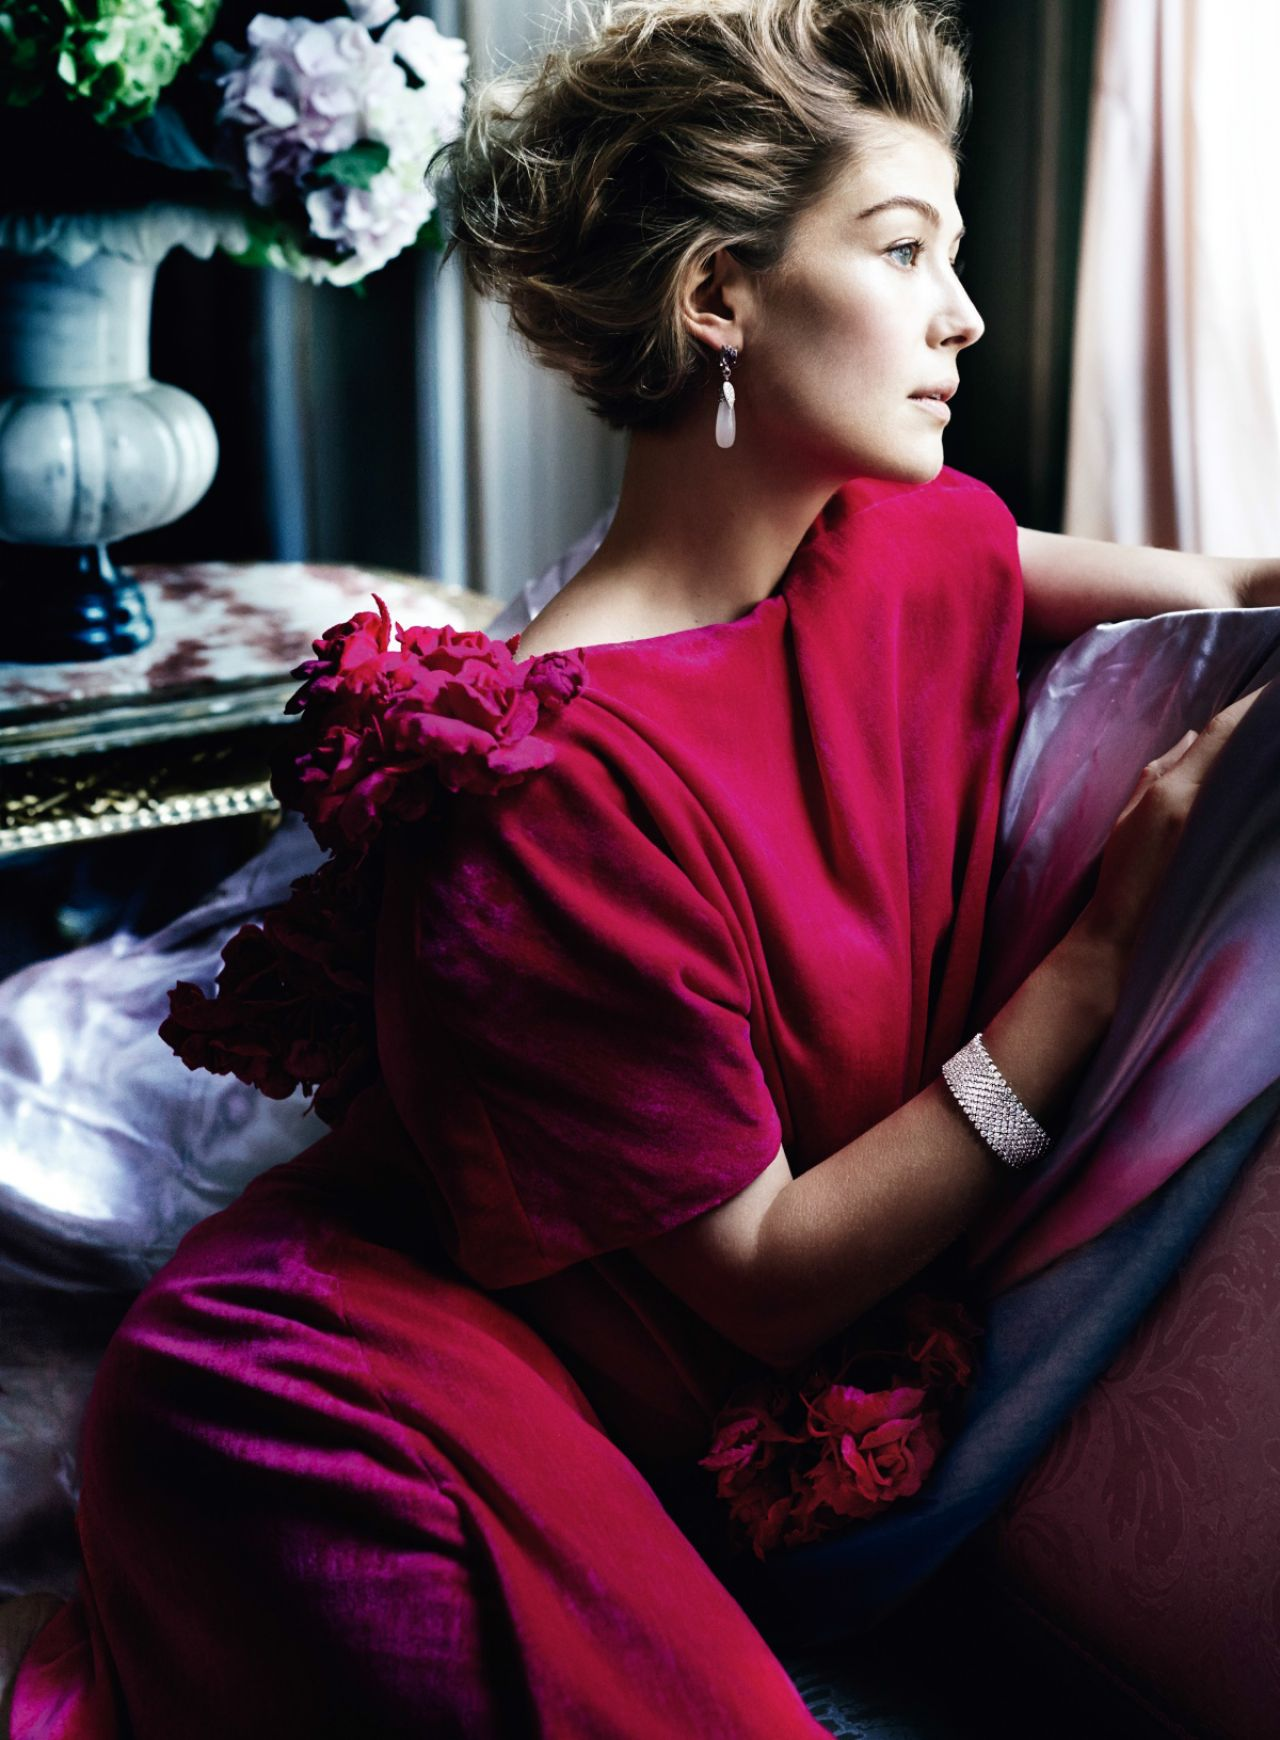 Rosamund Pike - Photoshoot for Vanity Fair Magazine February 2015